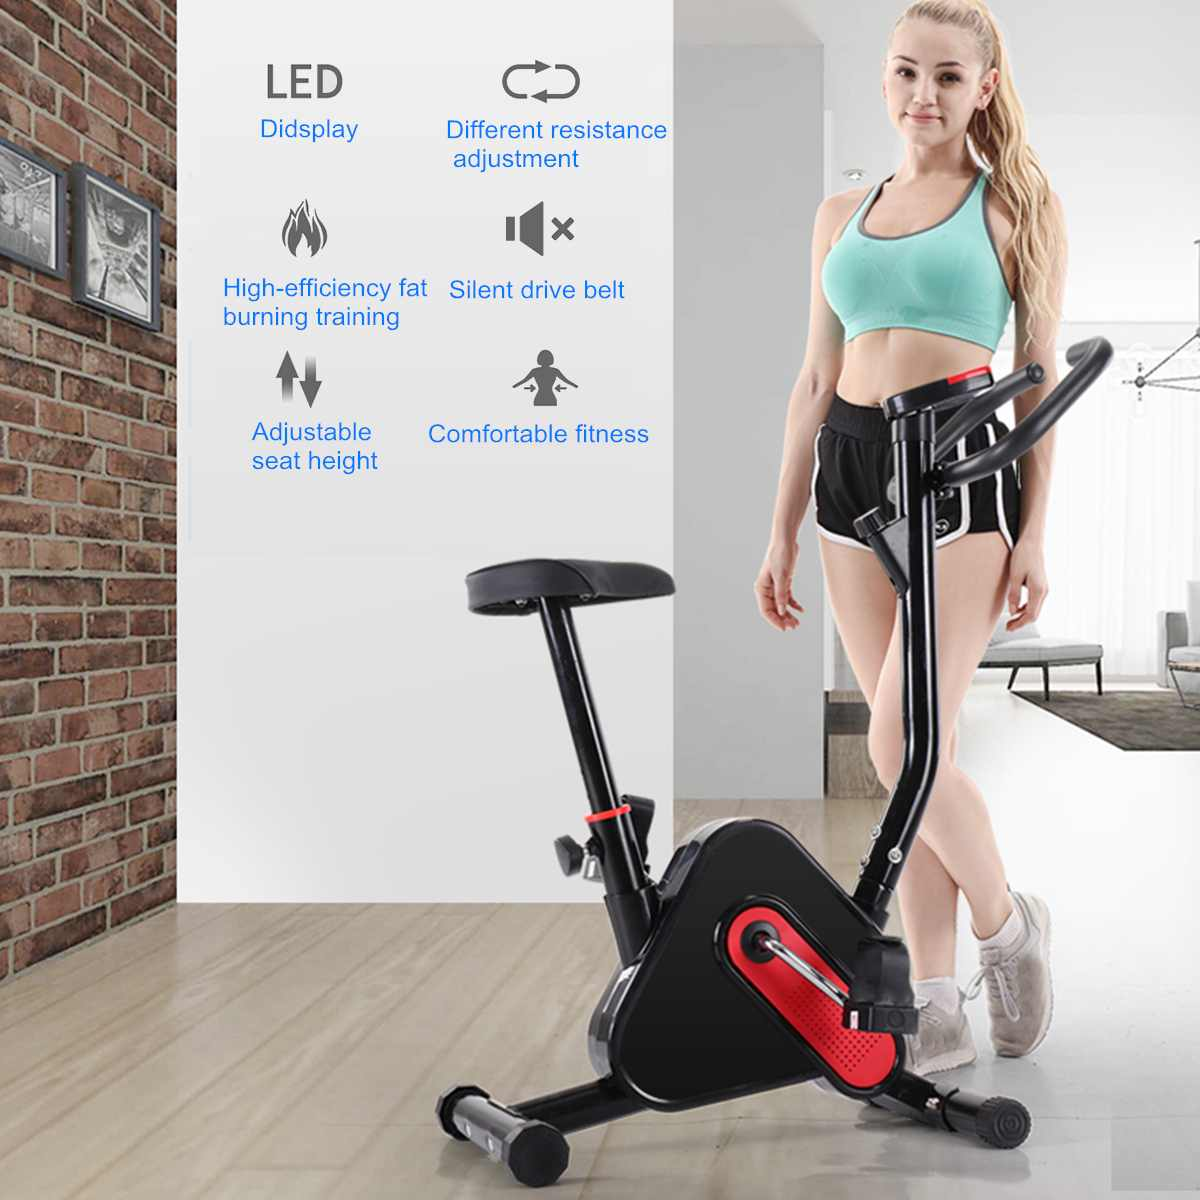 Wondrous Led Display Bicycle Fitness Exercise Bike Cardio Tools Home Creativecarmelina Interior Chair Design Creativecarmelinacom